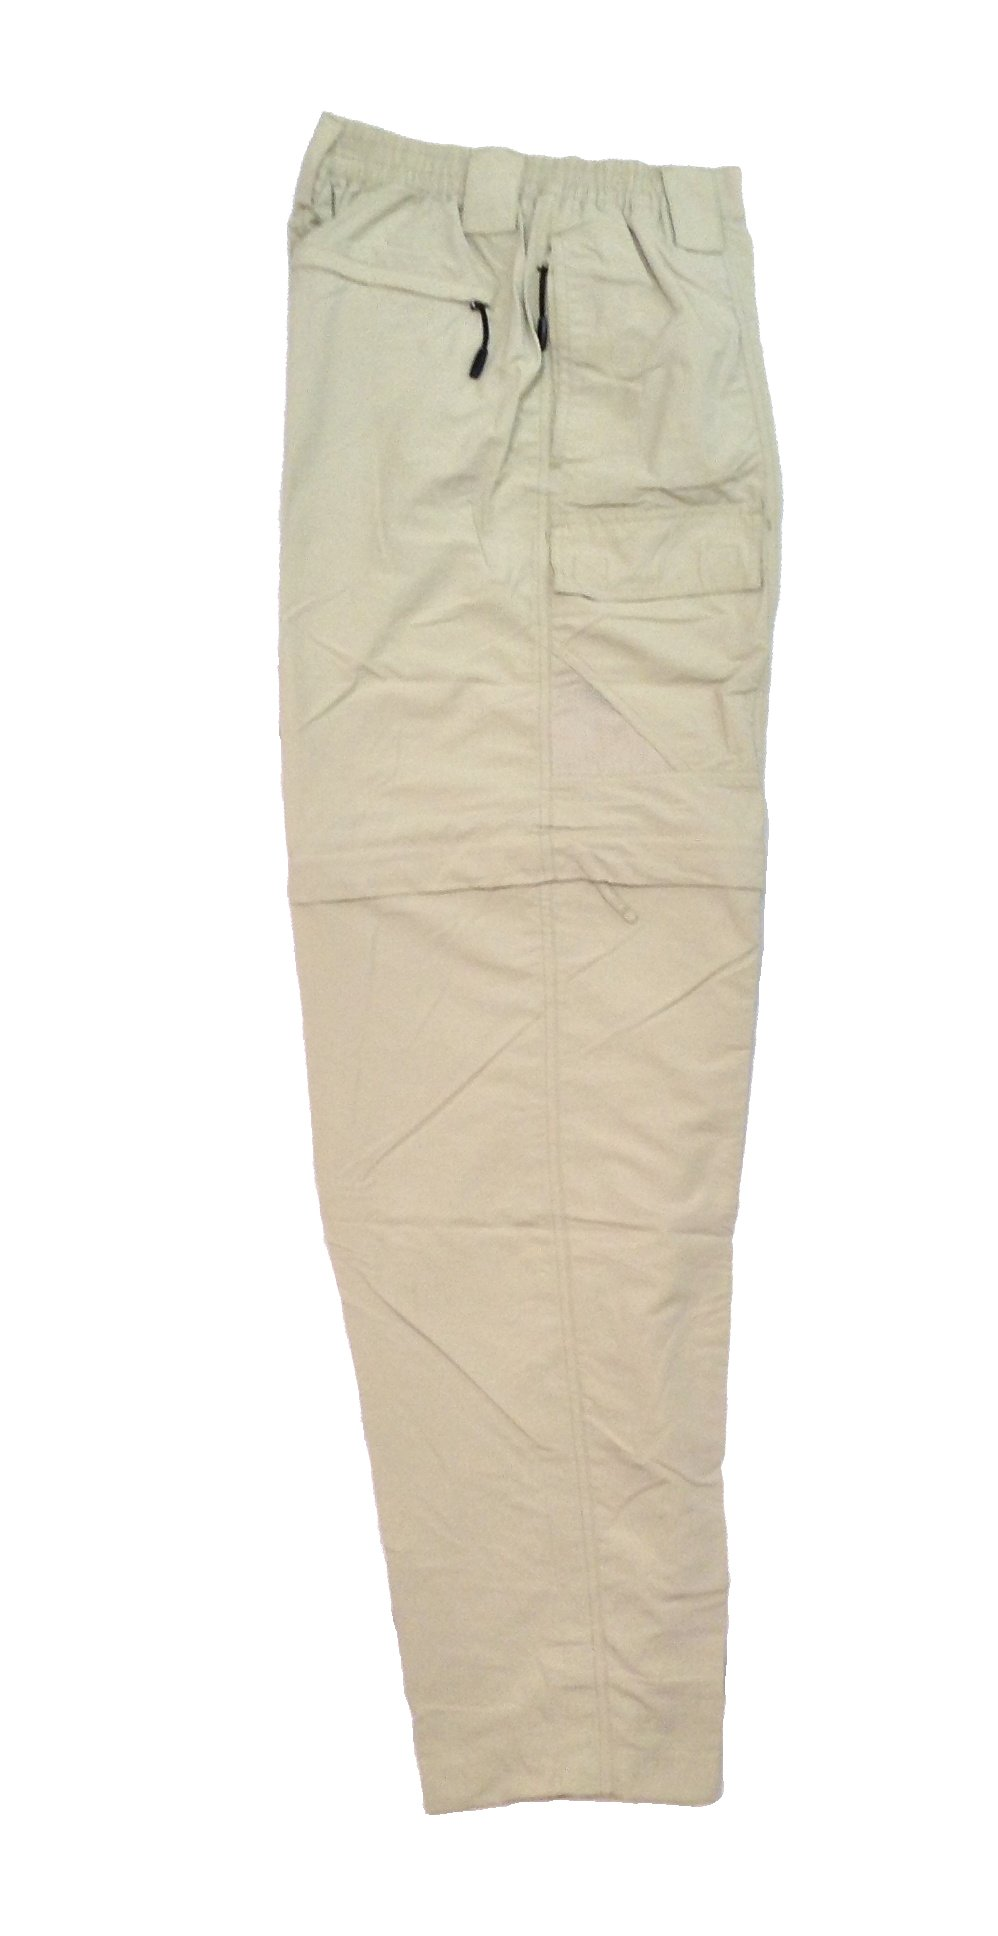 imini Bay Outfitters Men's Grand Cayman Zip-Off Nylon Pants 61670 Fossil M by Bimini Bay Outfitters